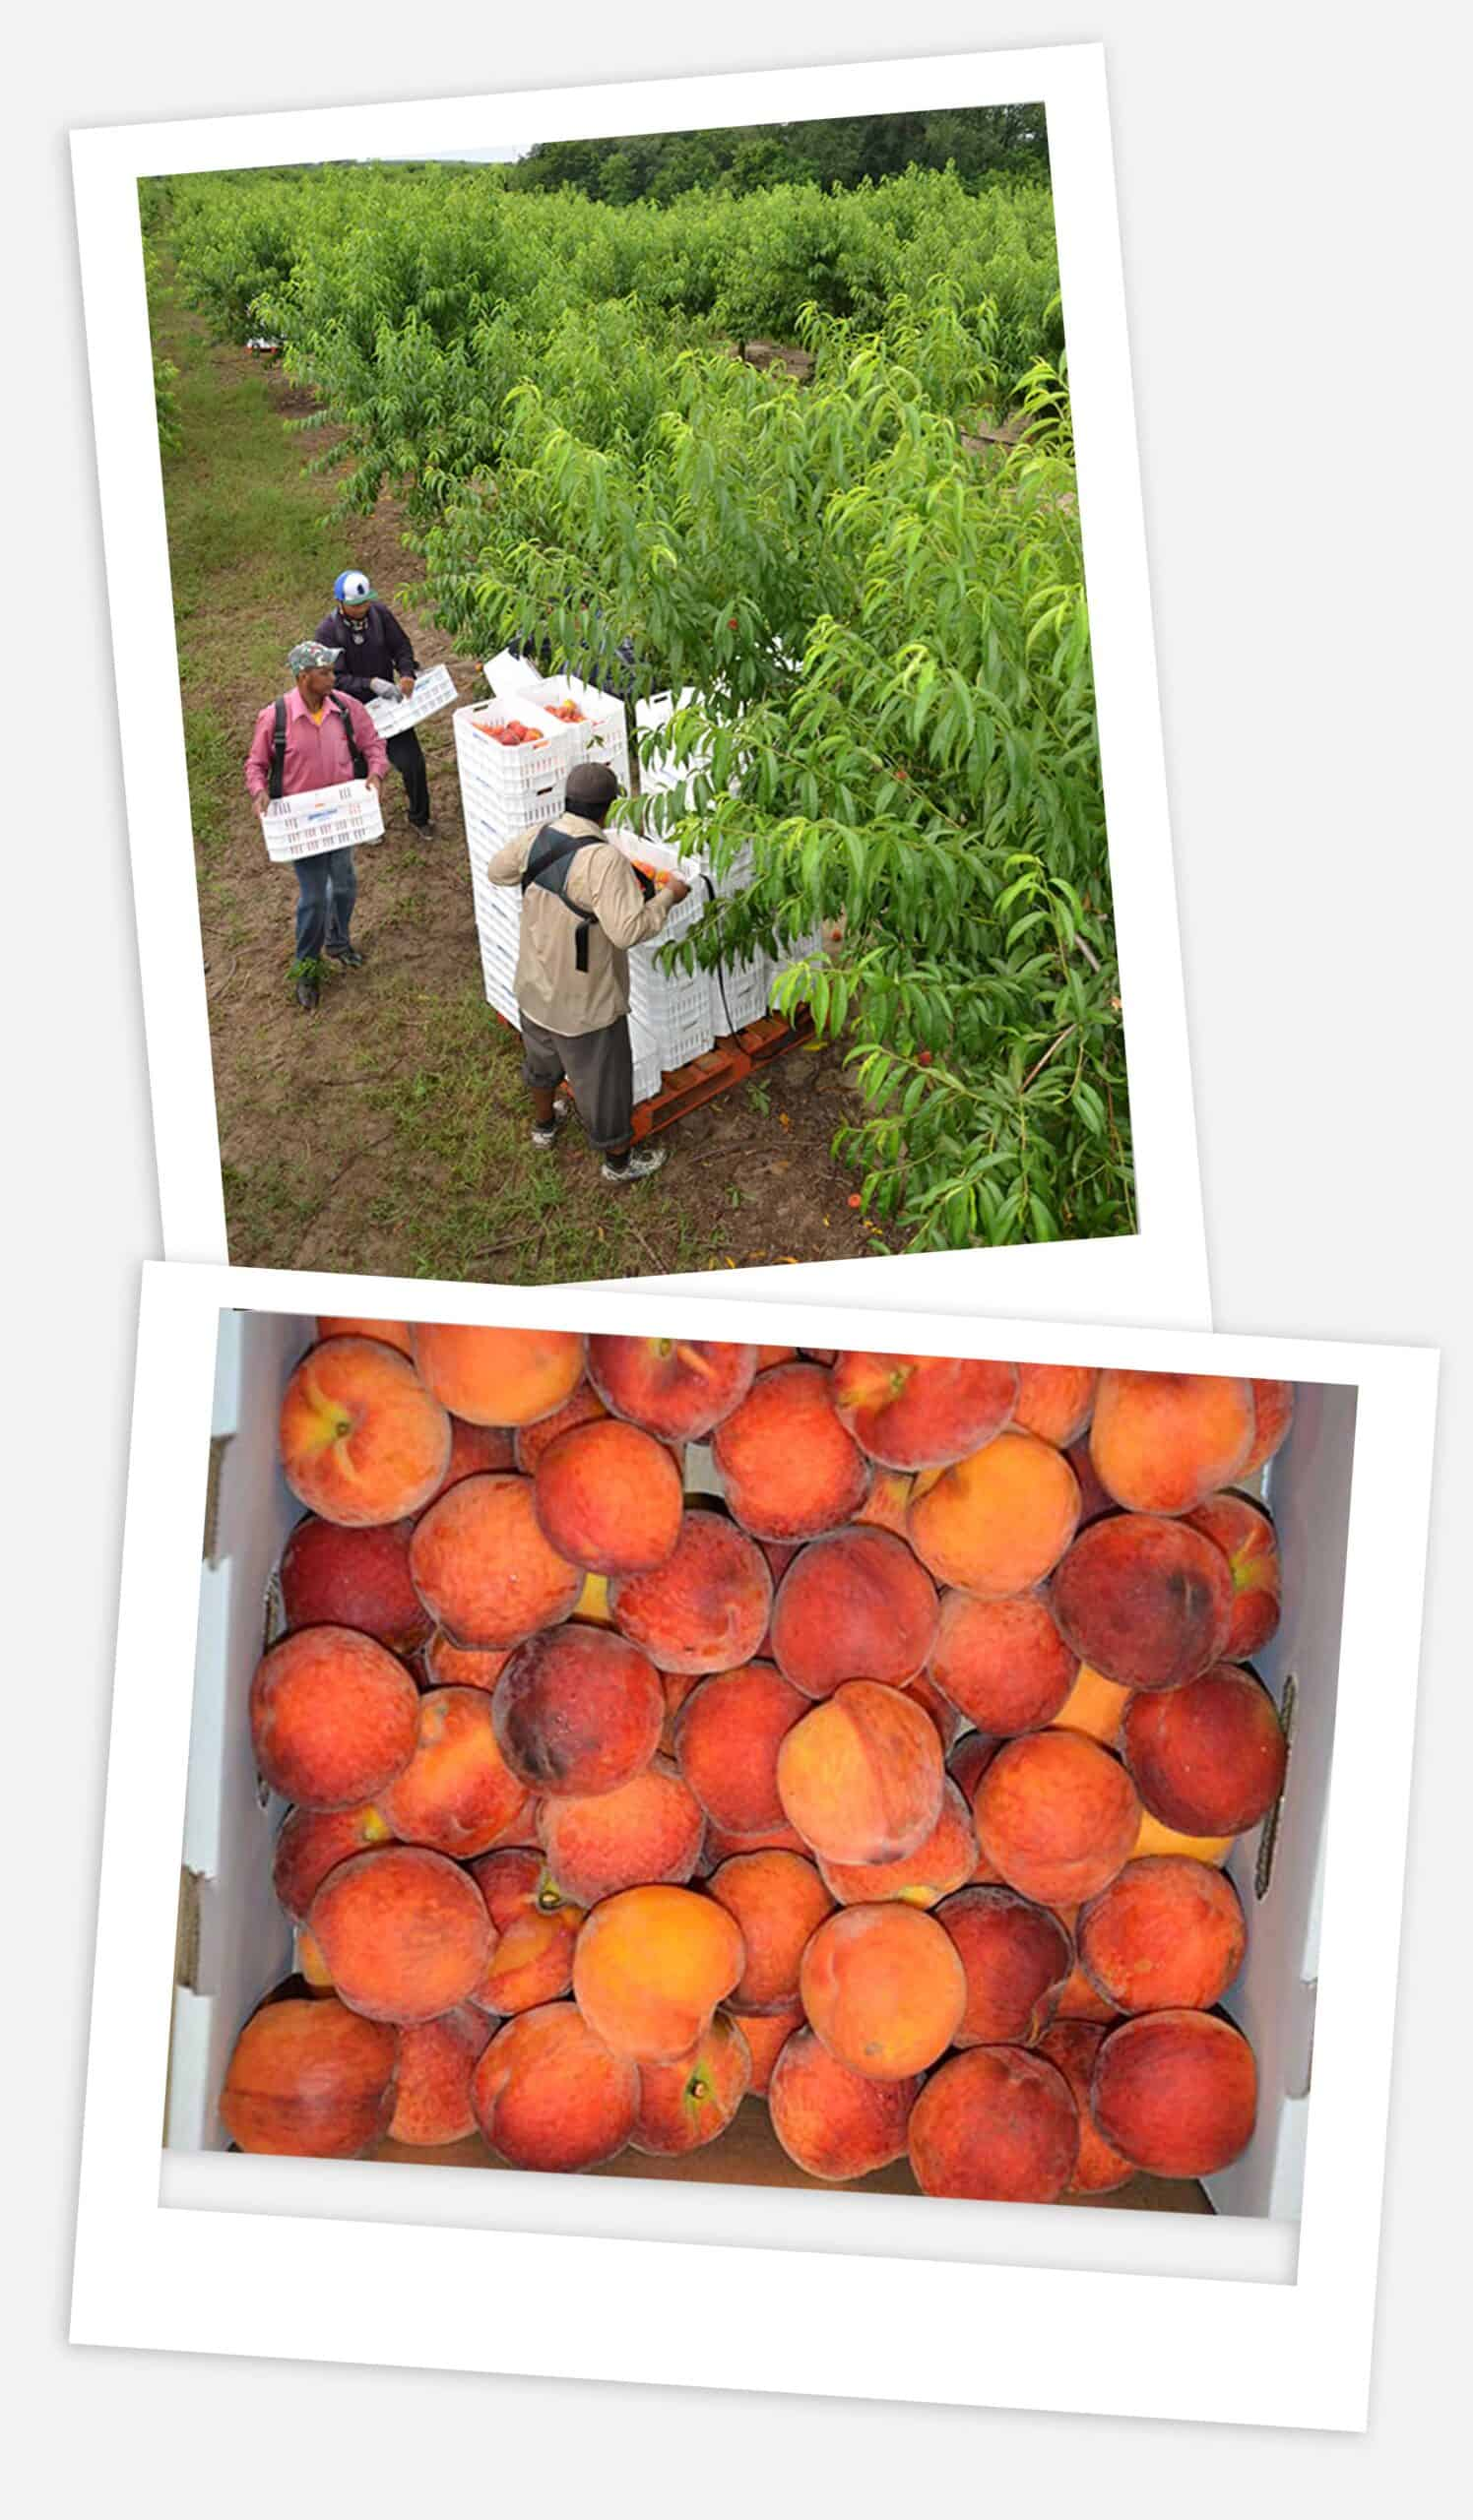 Florida classic growers with peaches